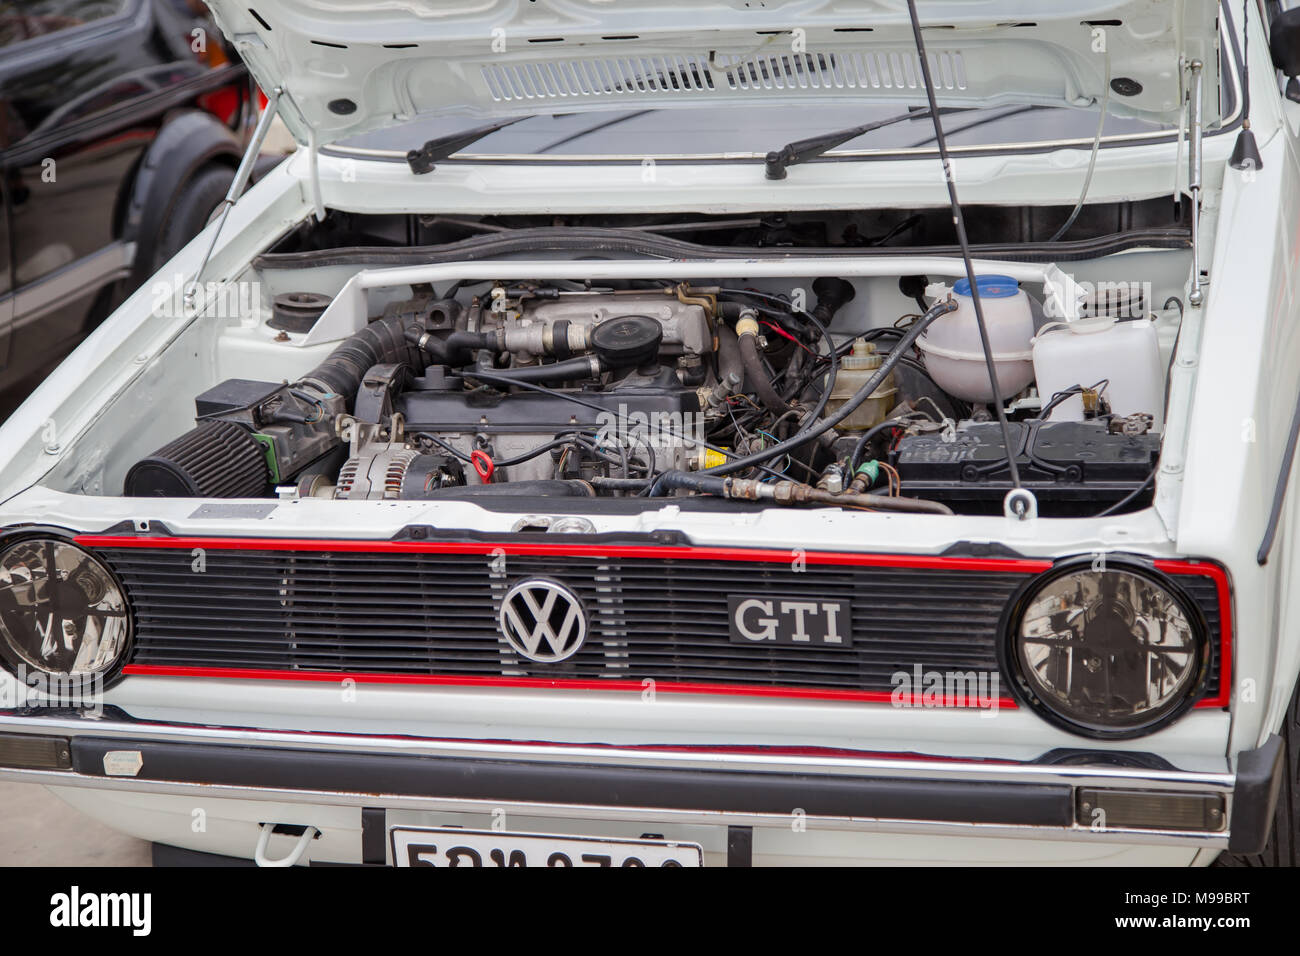 Nonthaburi, Thailand - March 10, 2018: VW owner show VW Golf GTI in volkswagen club meeting at car park of Robinson department store - Stock Image